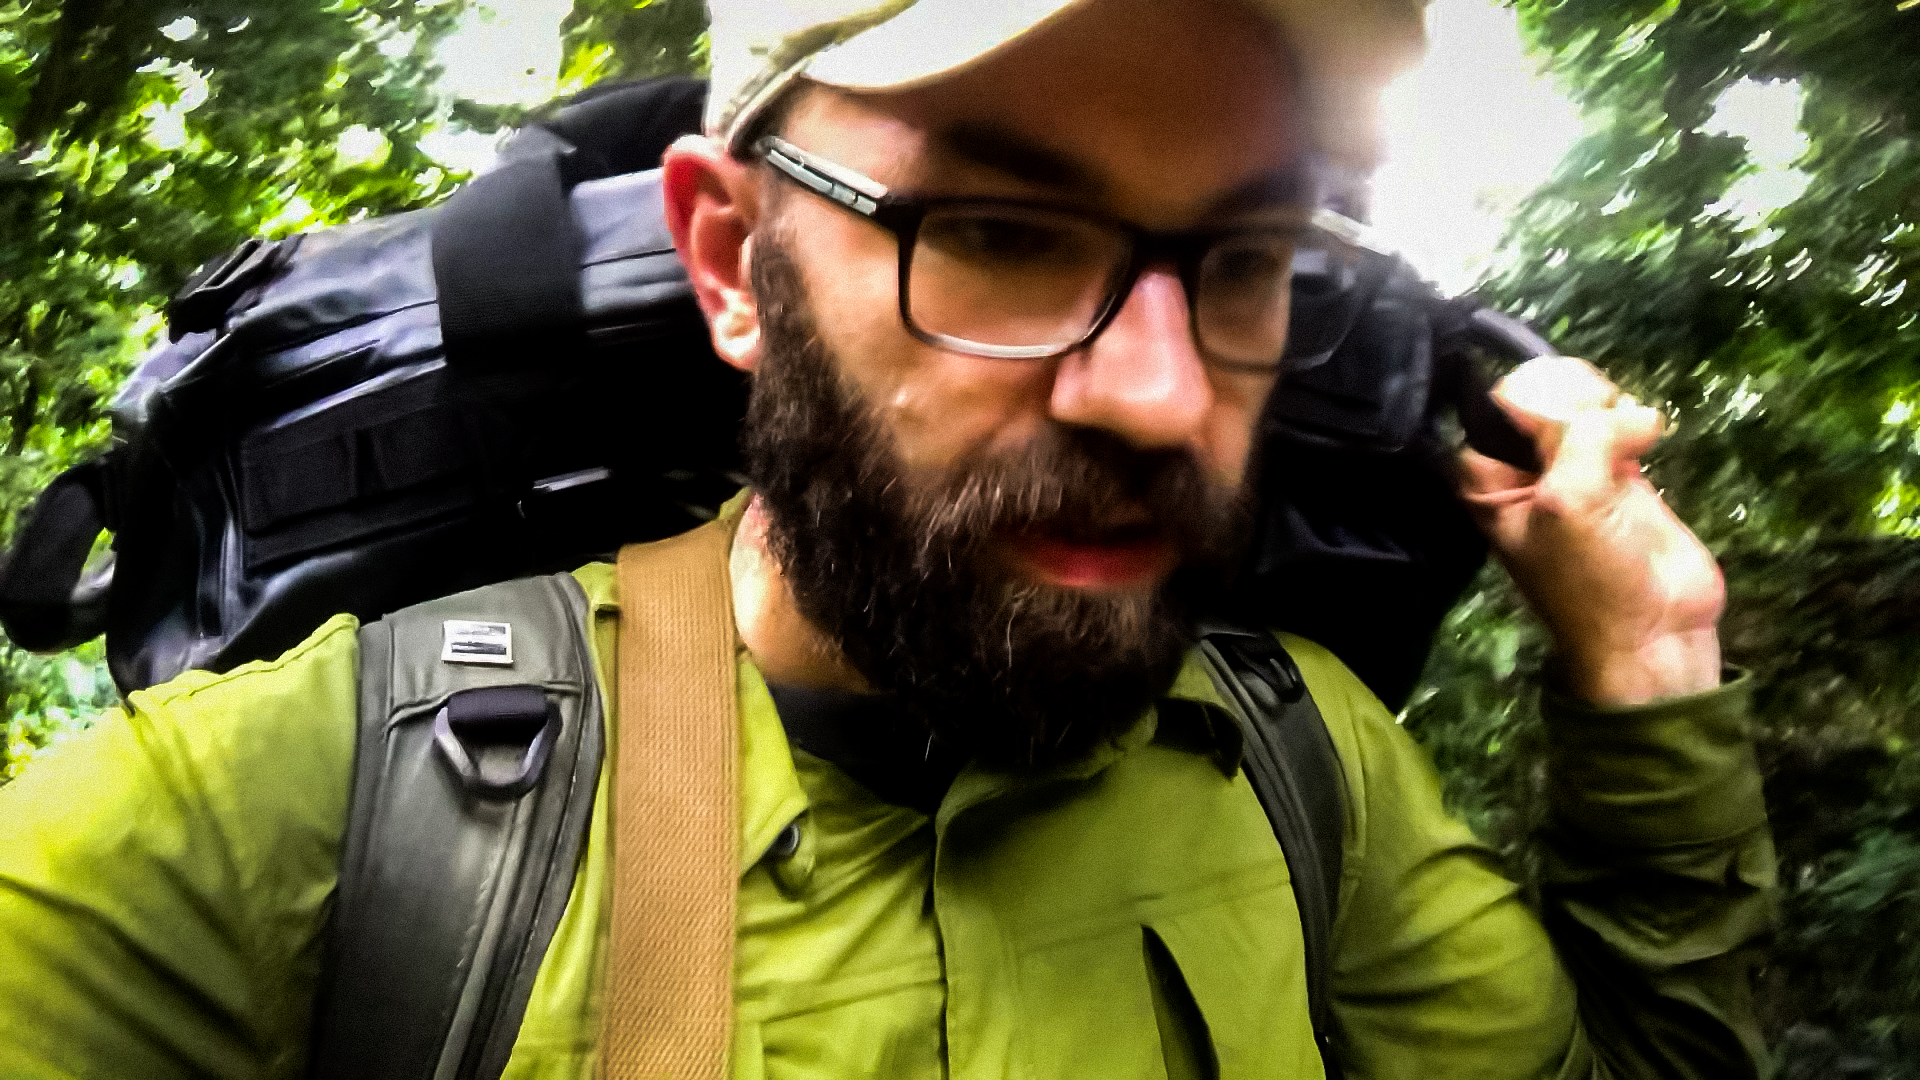 Hiking with gear in tow in the Congo rainforest